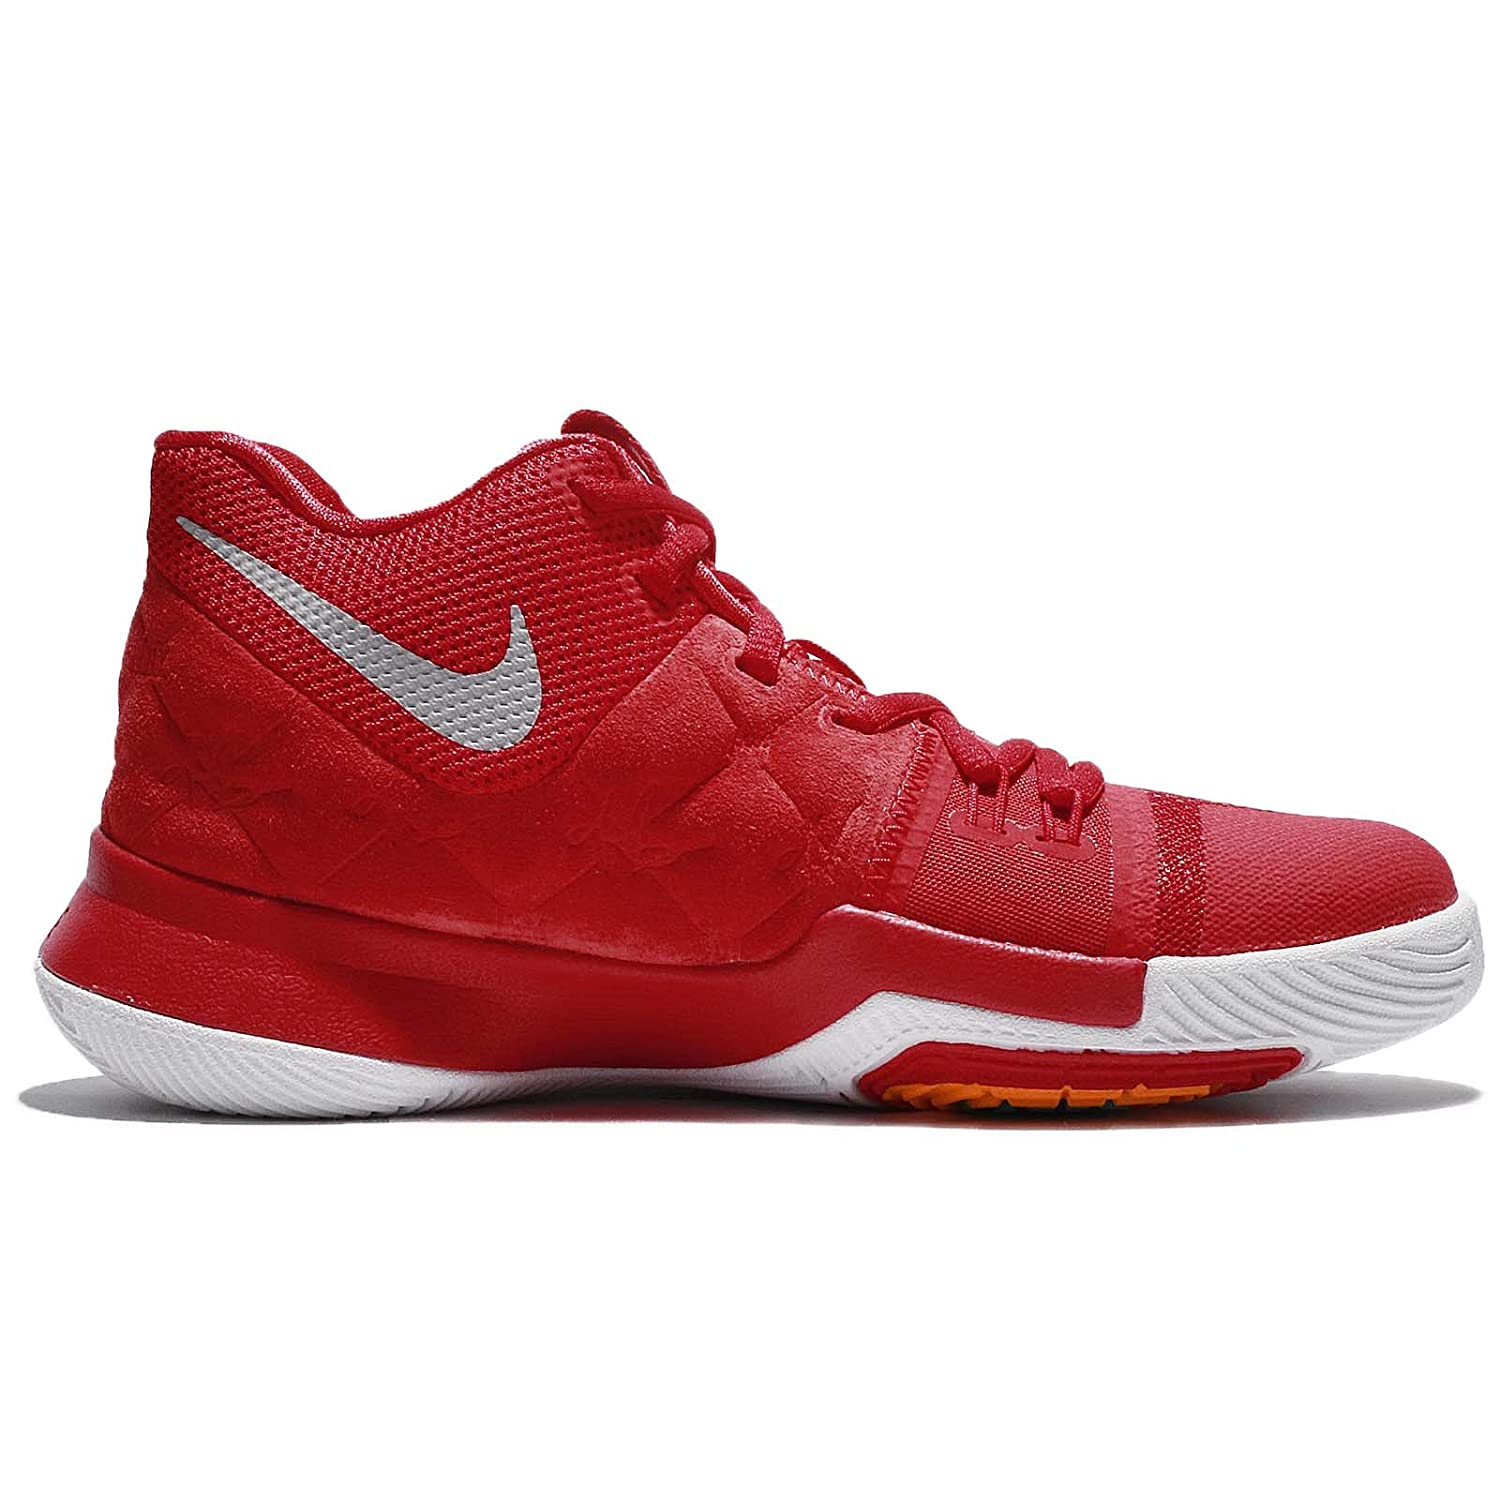 NIKE Boys Kyrie 3 Colorblock Mids Basketball Shoes B077Q7WRJX Youth Size 6.5|University Red/University Red-wolf Grey